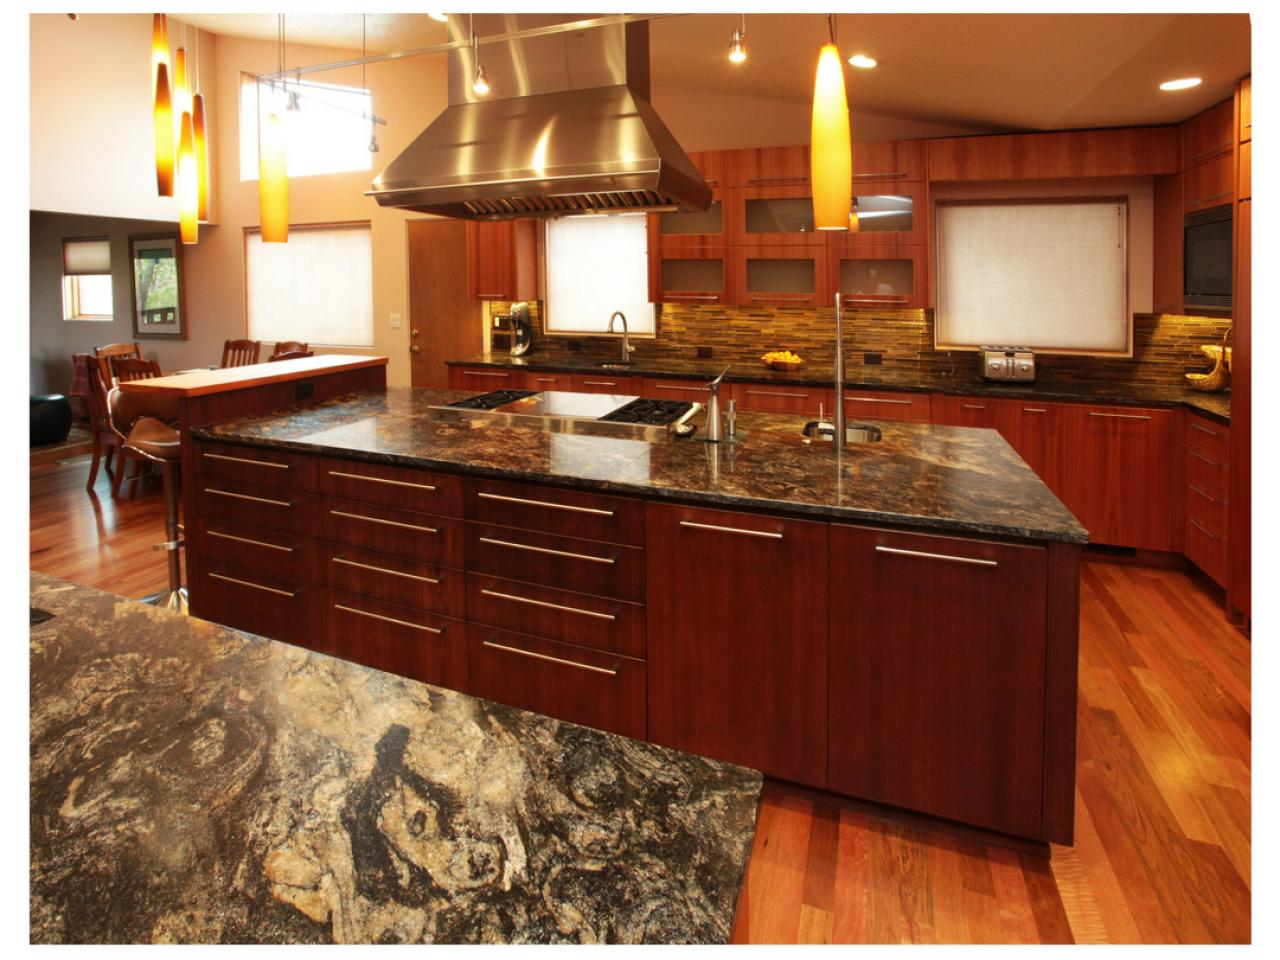 Kitchen colors with brown cabinets islands carts dark modern cabinet designs best free - Kitchen island color ideas ...